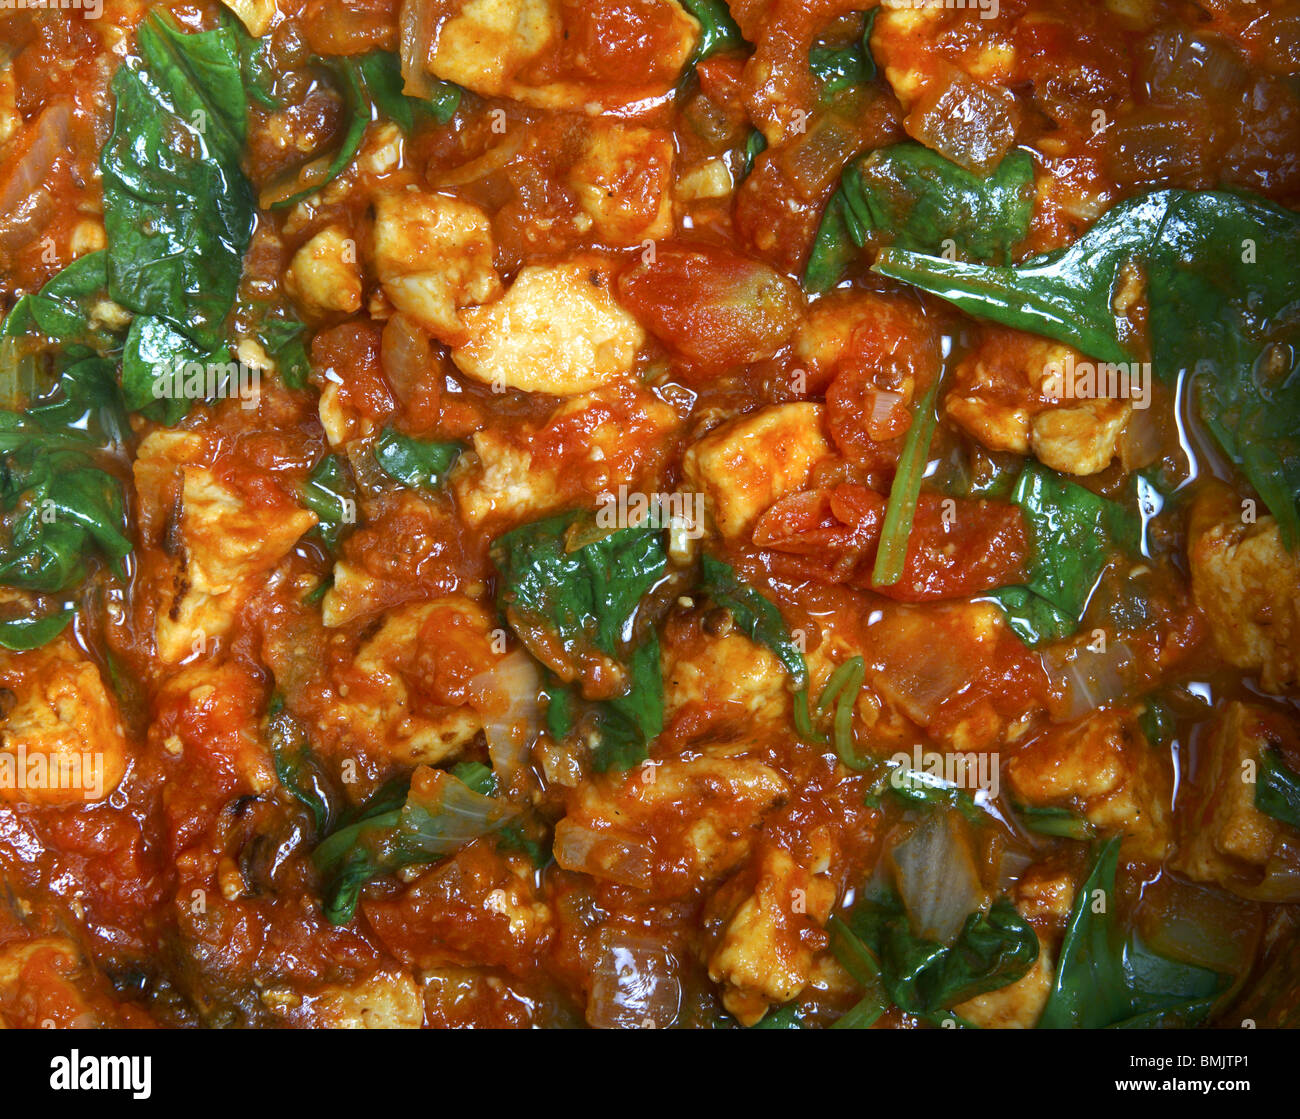 Quorn casserole, a meat substitute. - Stock Image